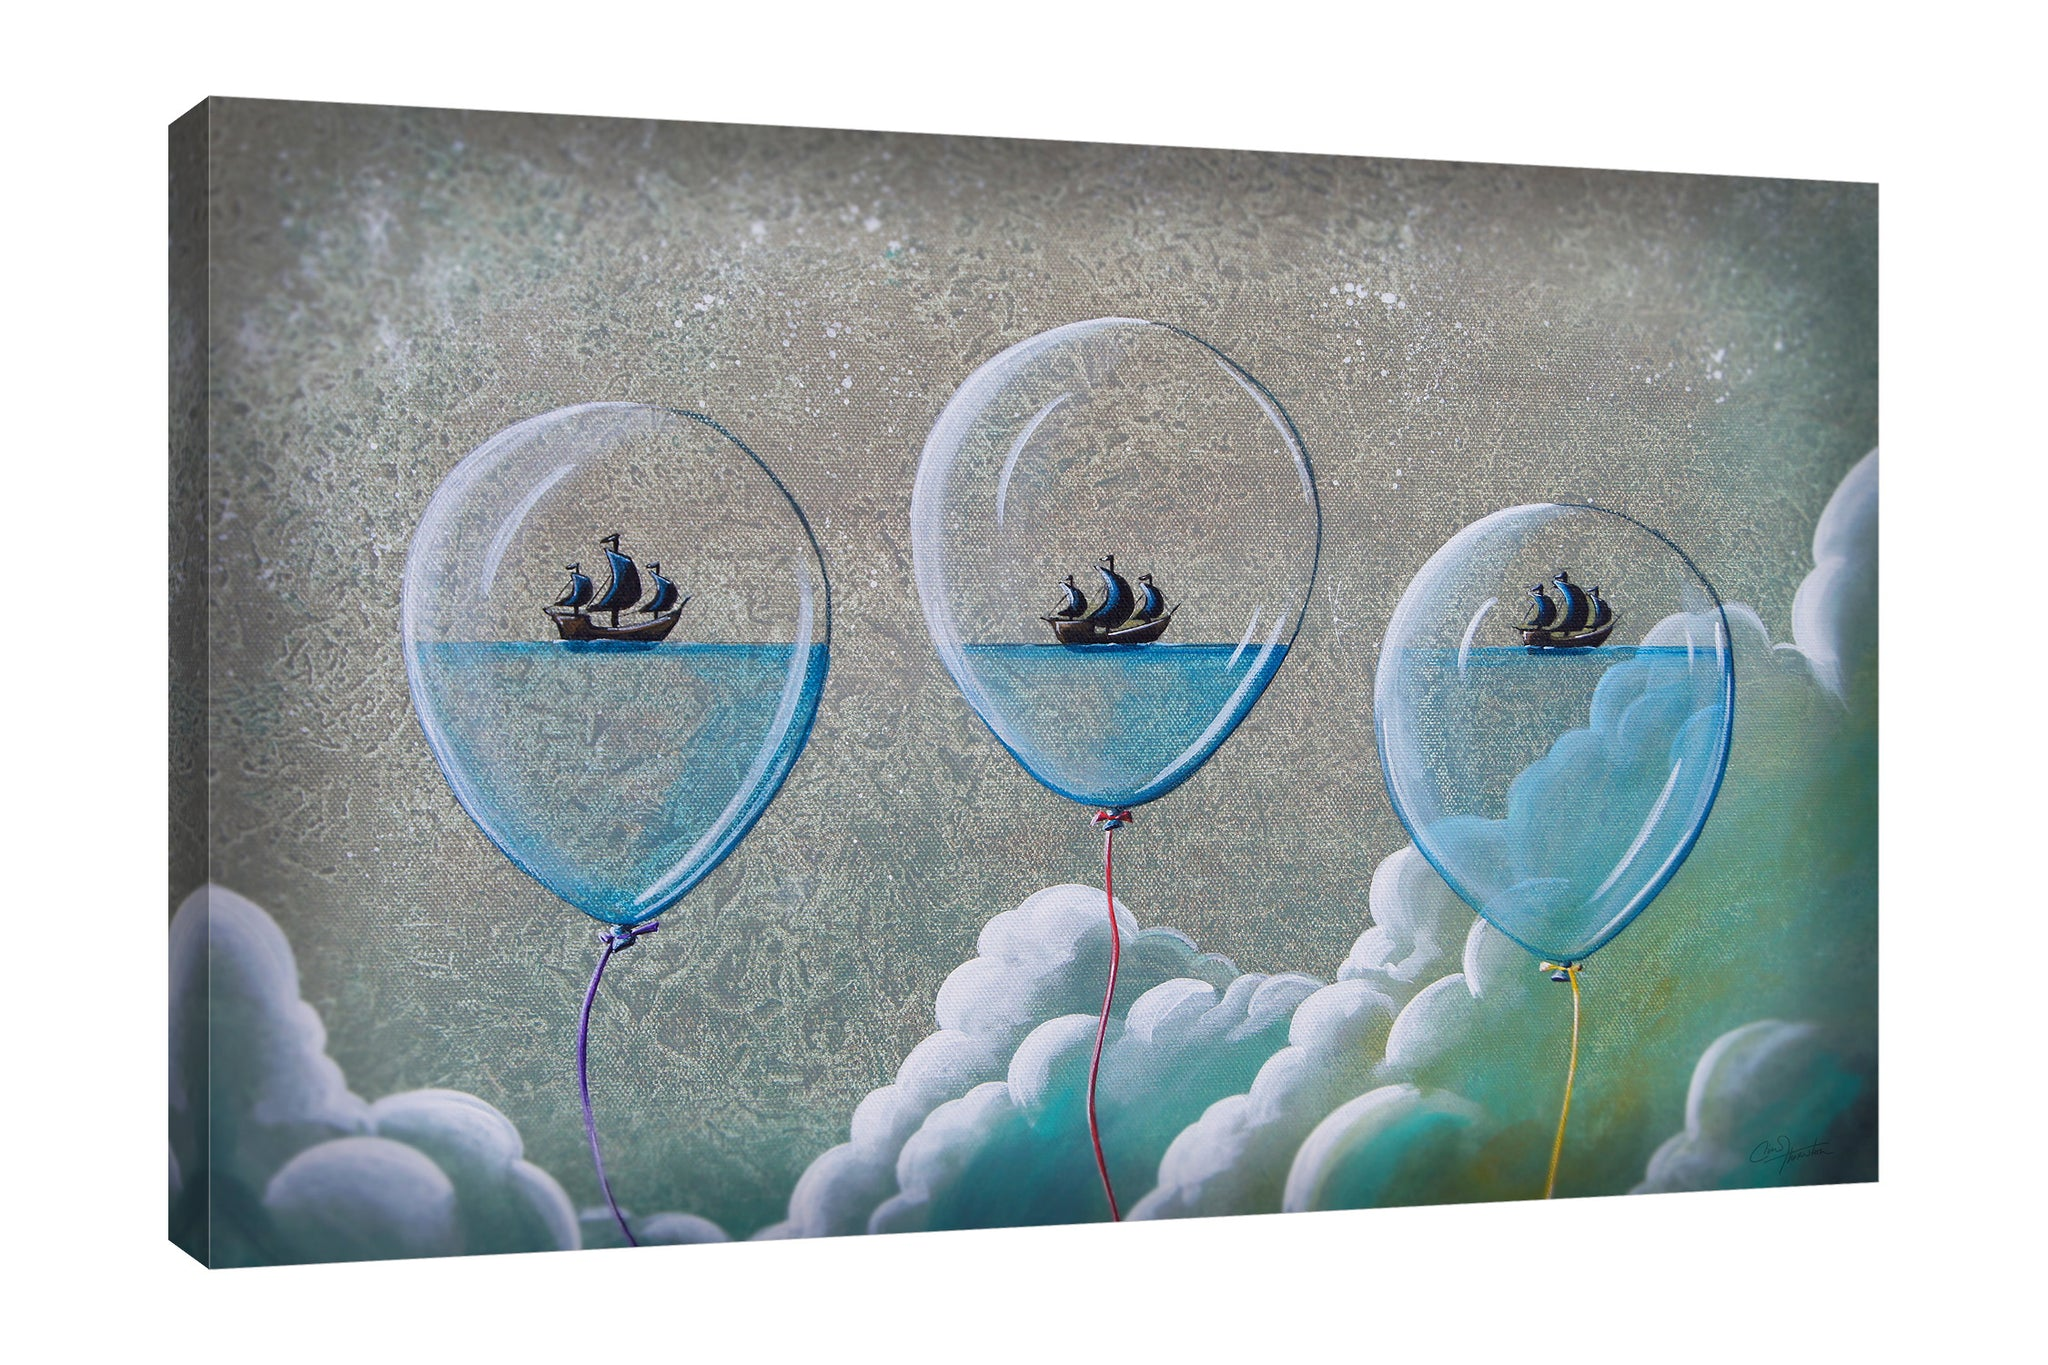 Cindy-Thornton,Modern & Contemporary,Nautical & Beach,balloons,boats,skies,coastal,Red,Blue,Purple,Gray,Army Green,Charcoal Gray,Turquoise Blue